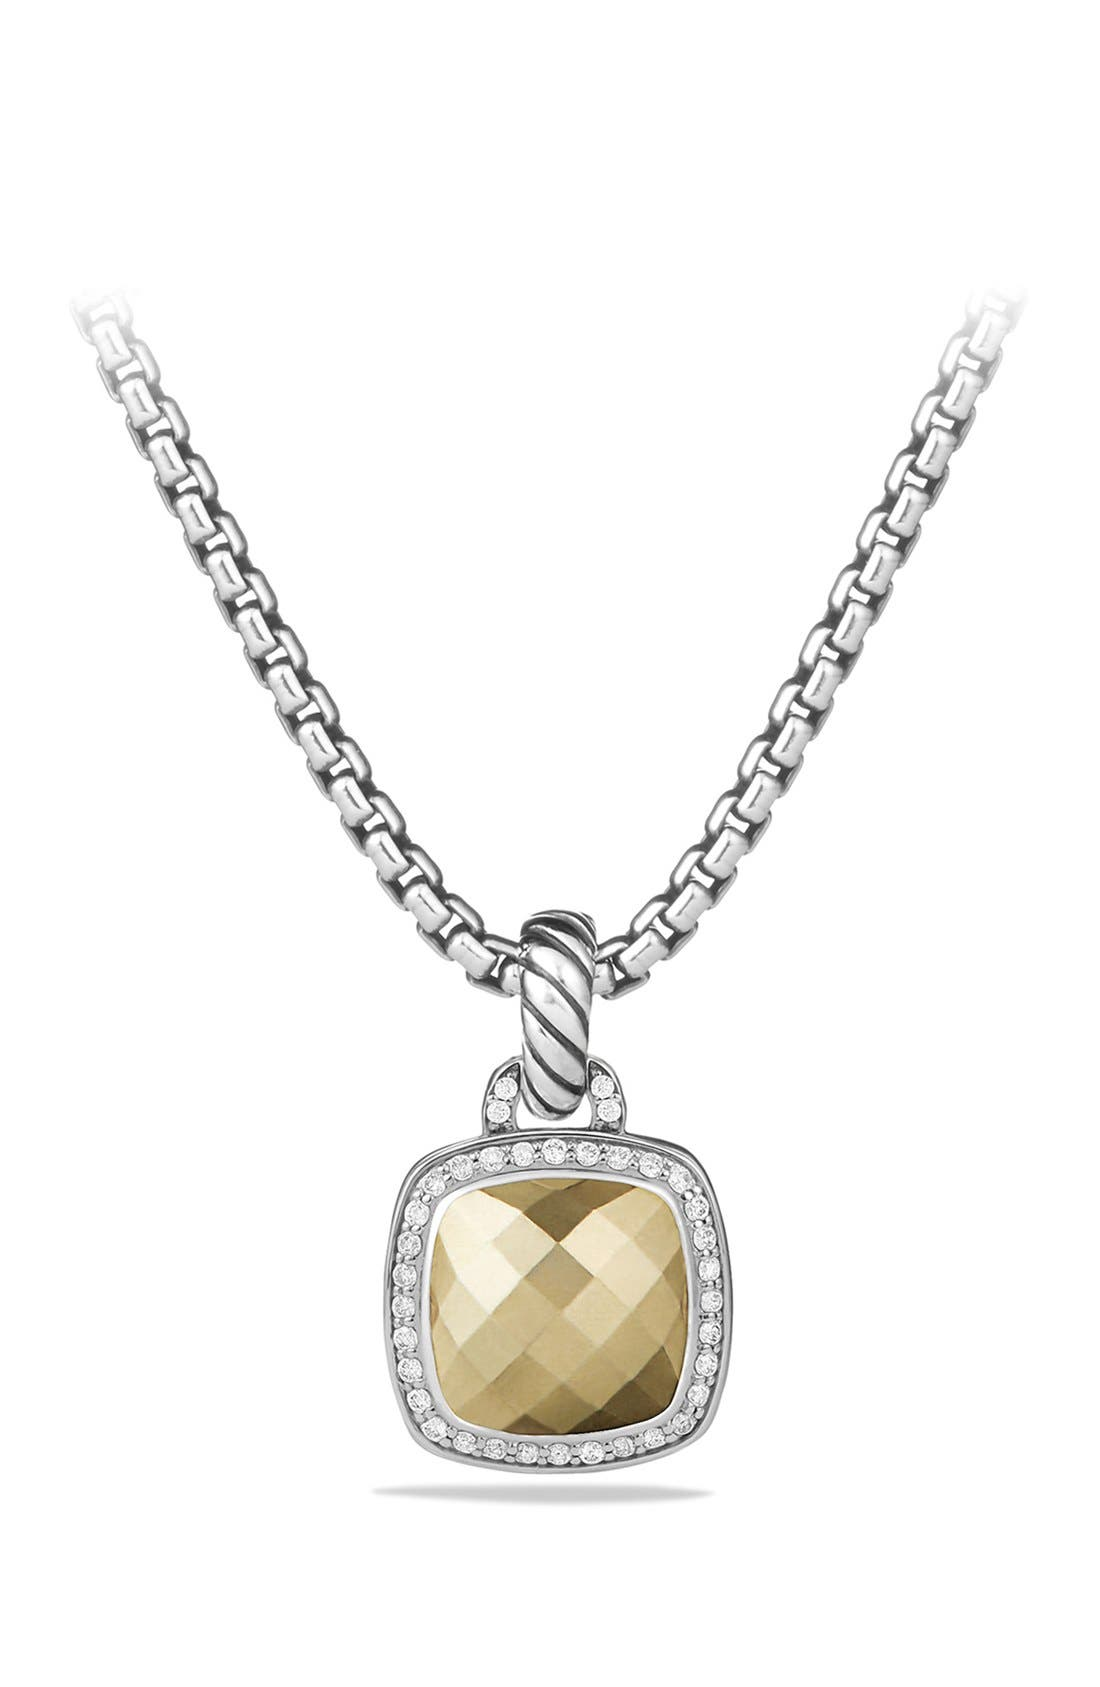 Main Image - David Yurman 'Albion' Pendant with Gold Dome and Diamonds